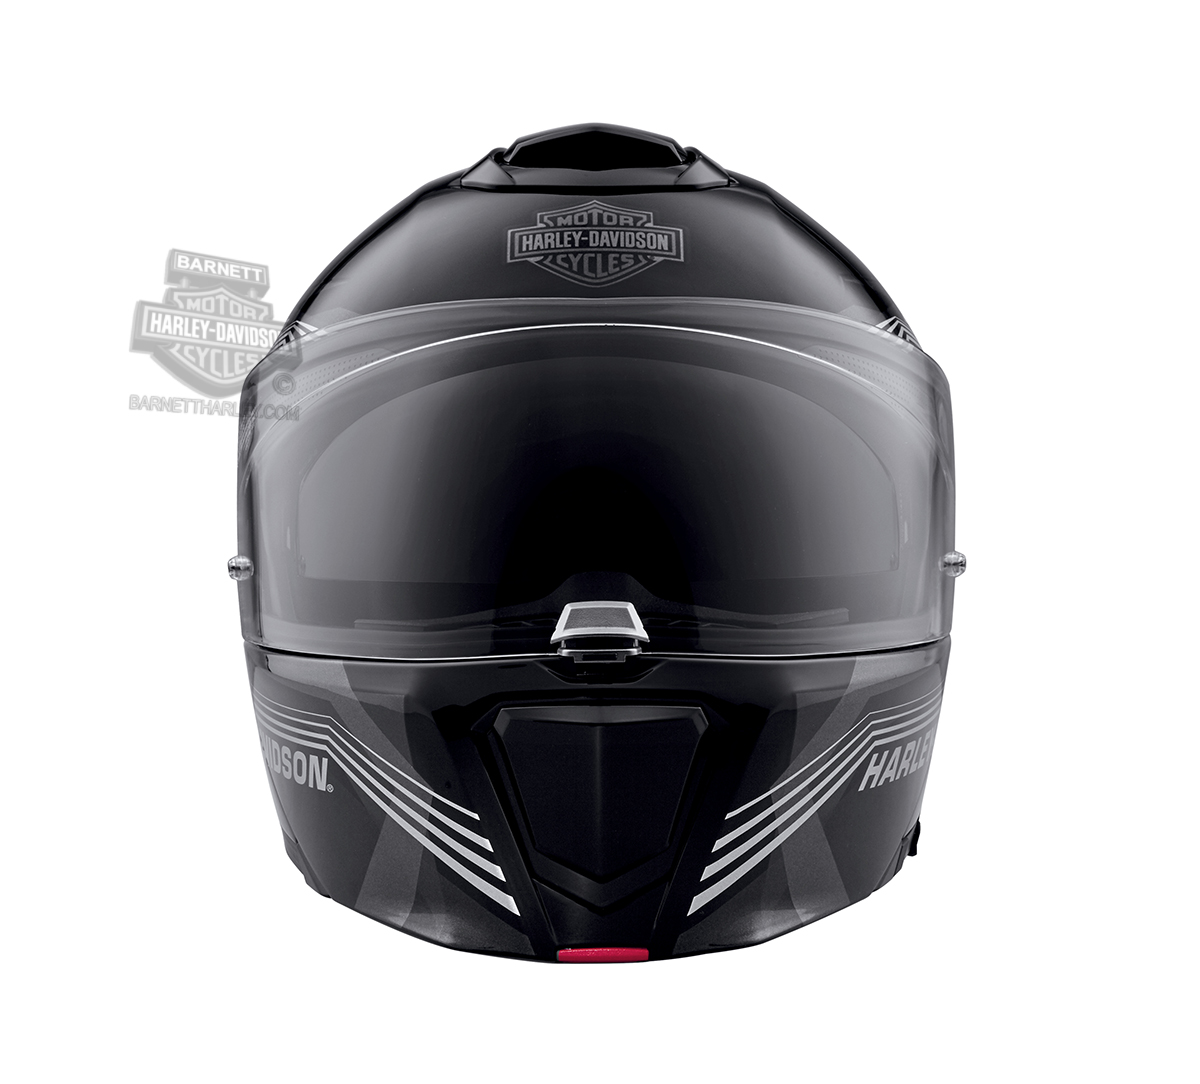 6f66f842 ... Harley-Davidson® Mens FXRG® H29 with Sun Shield Black Full Face Modular  Helmet. Tap to expand